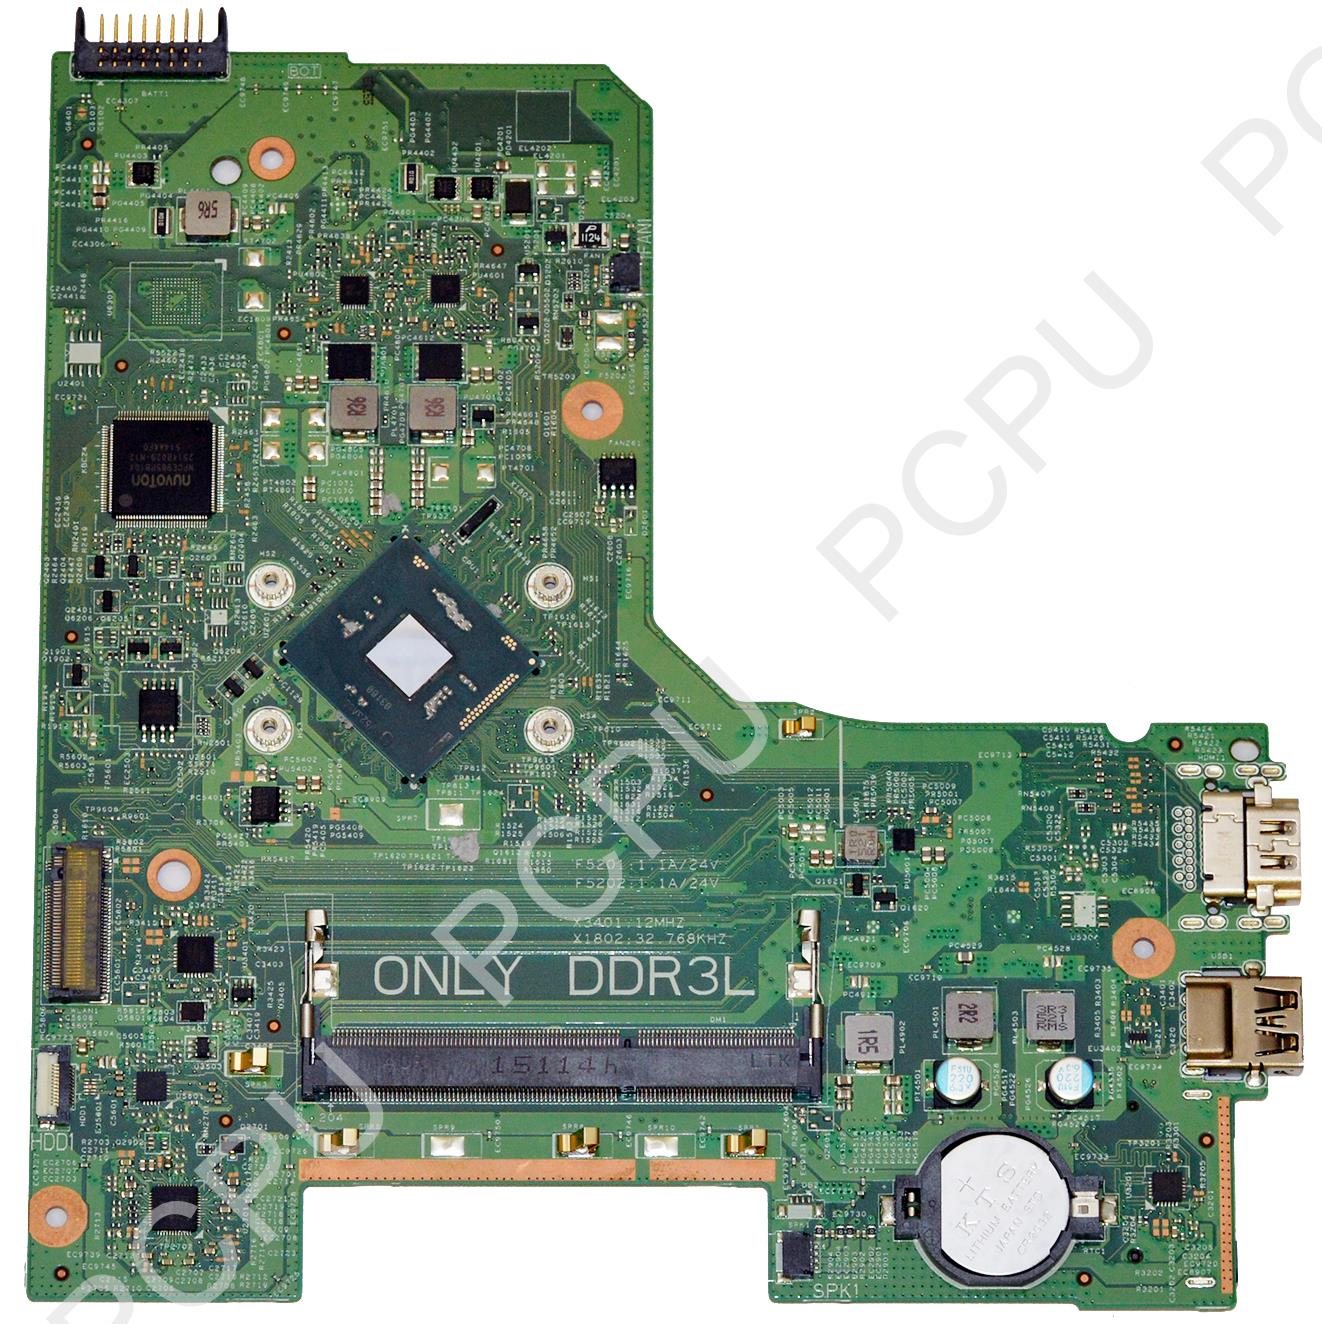 JX7F0 Dell Inspiron 14 3452 Laptop Motherboard w/ Intel Pentium N3700 1.6Ghz CPU